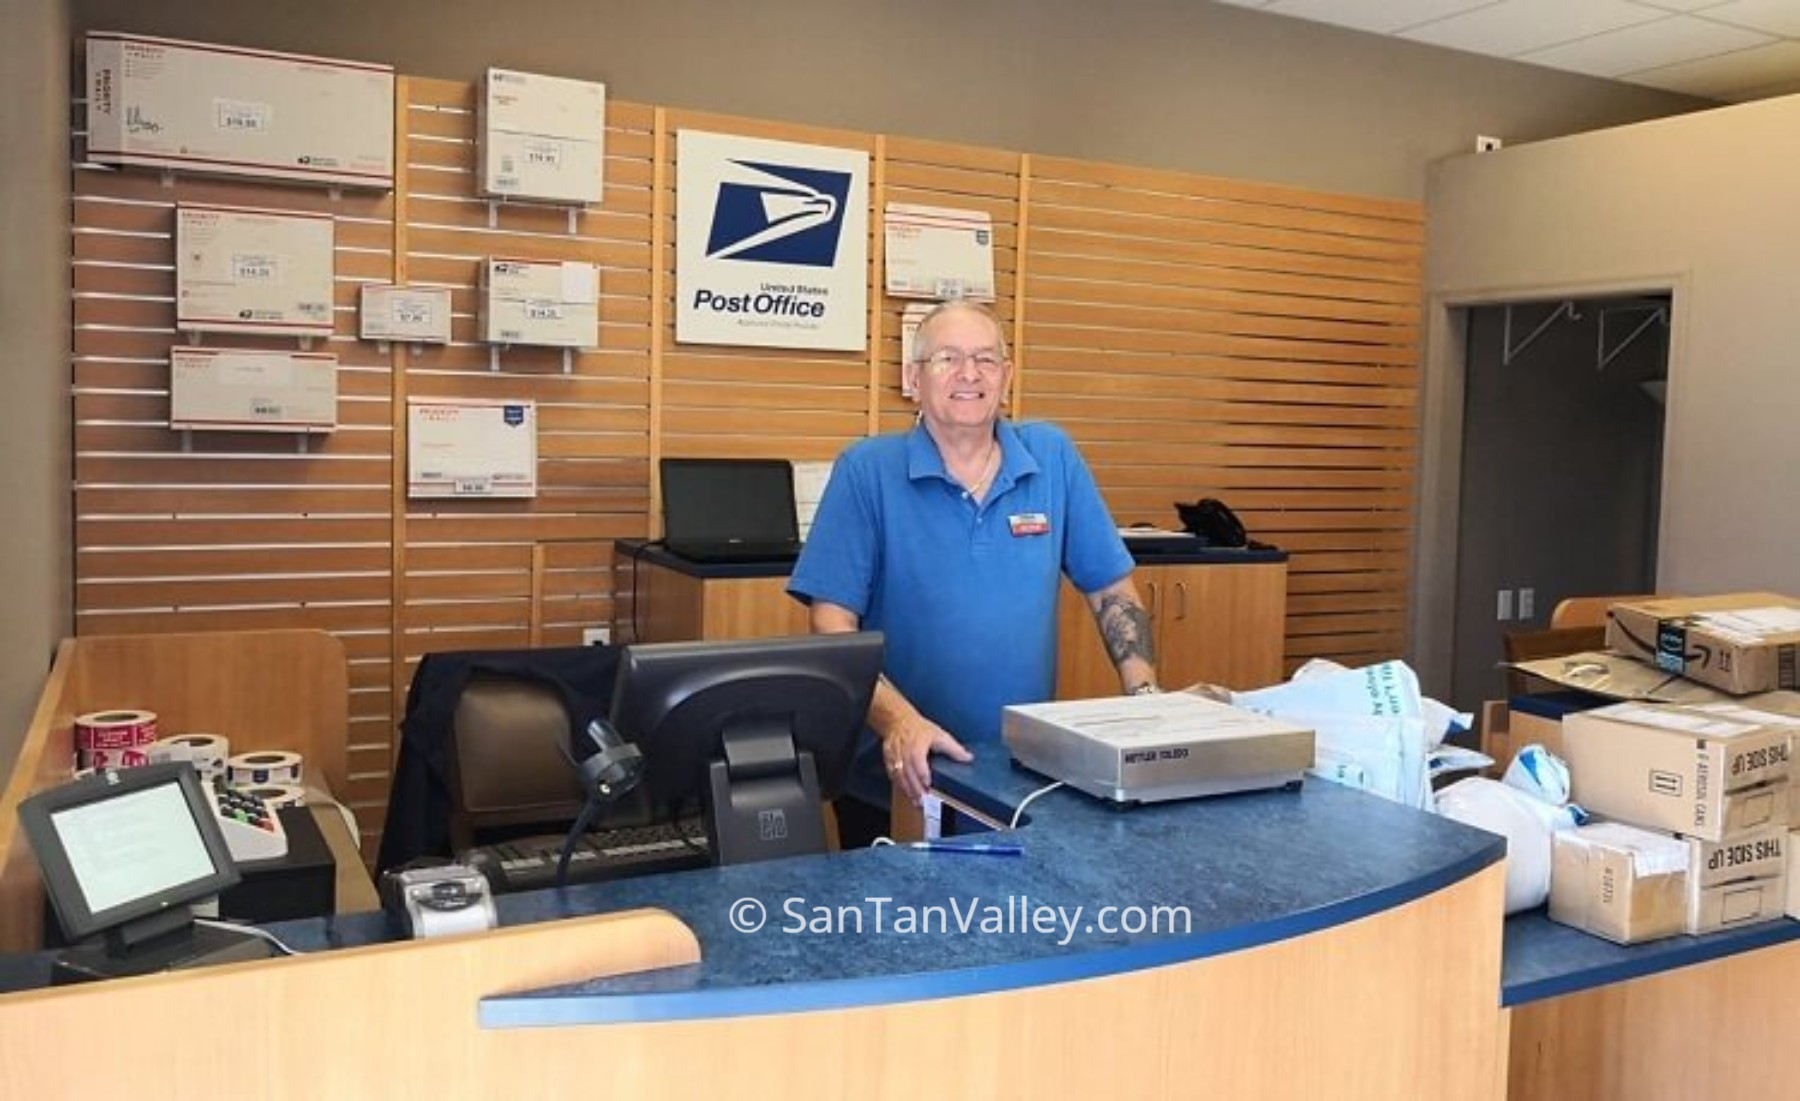 San Tan Valley Post Office is Officially Open